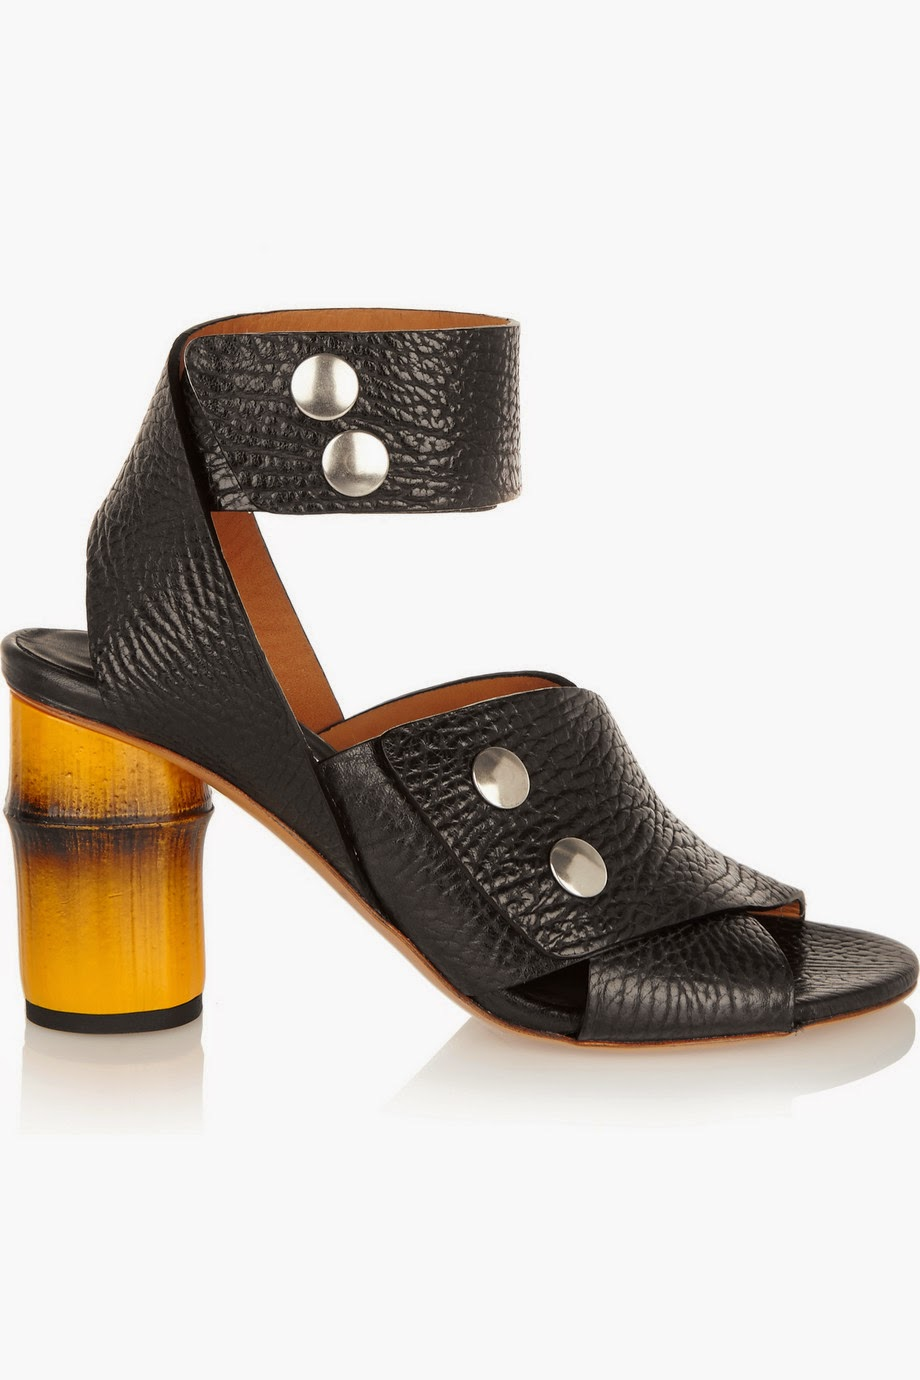 acne black sandals, acne pica shoes, acne black heel sandals,